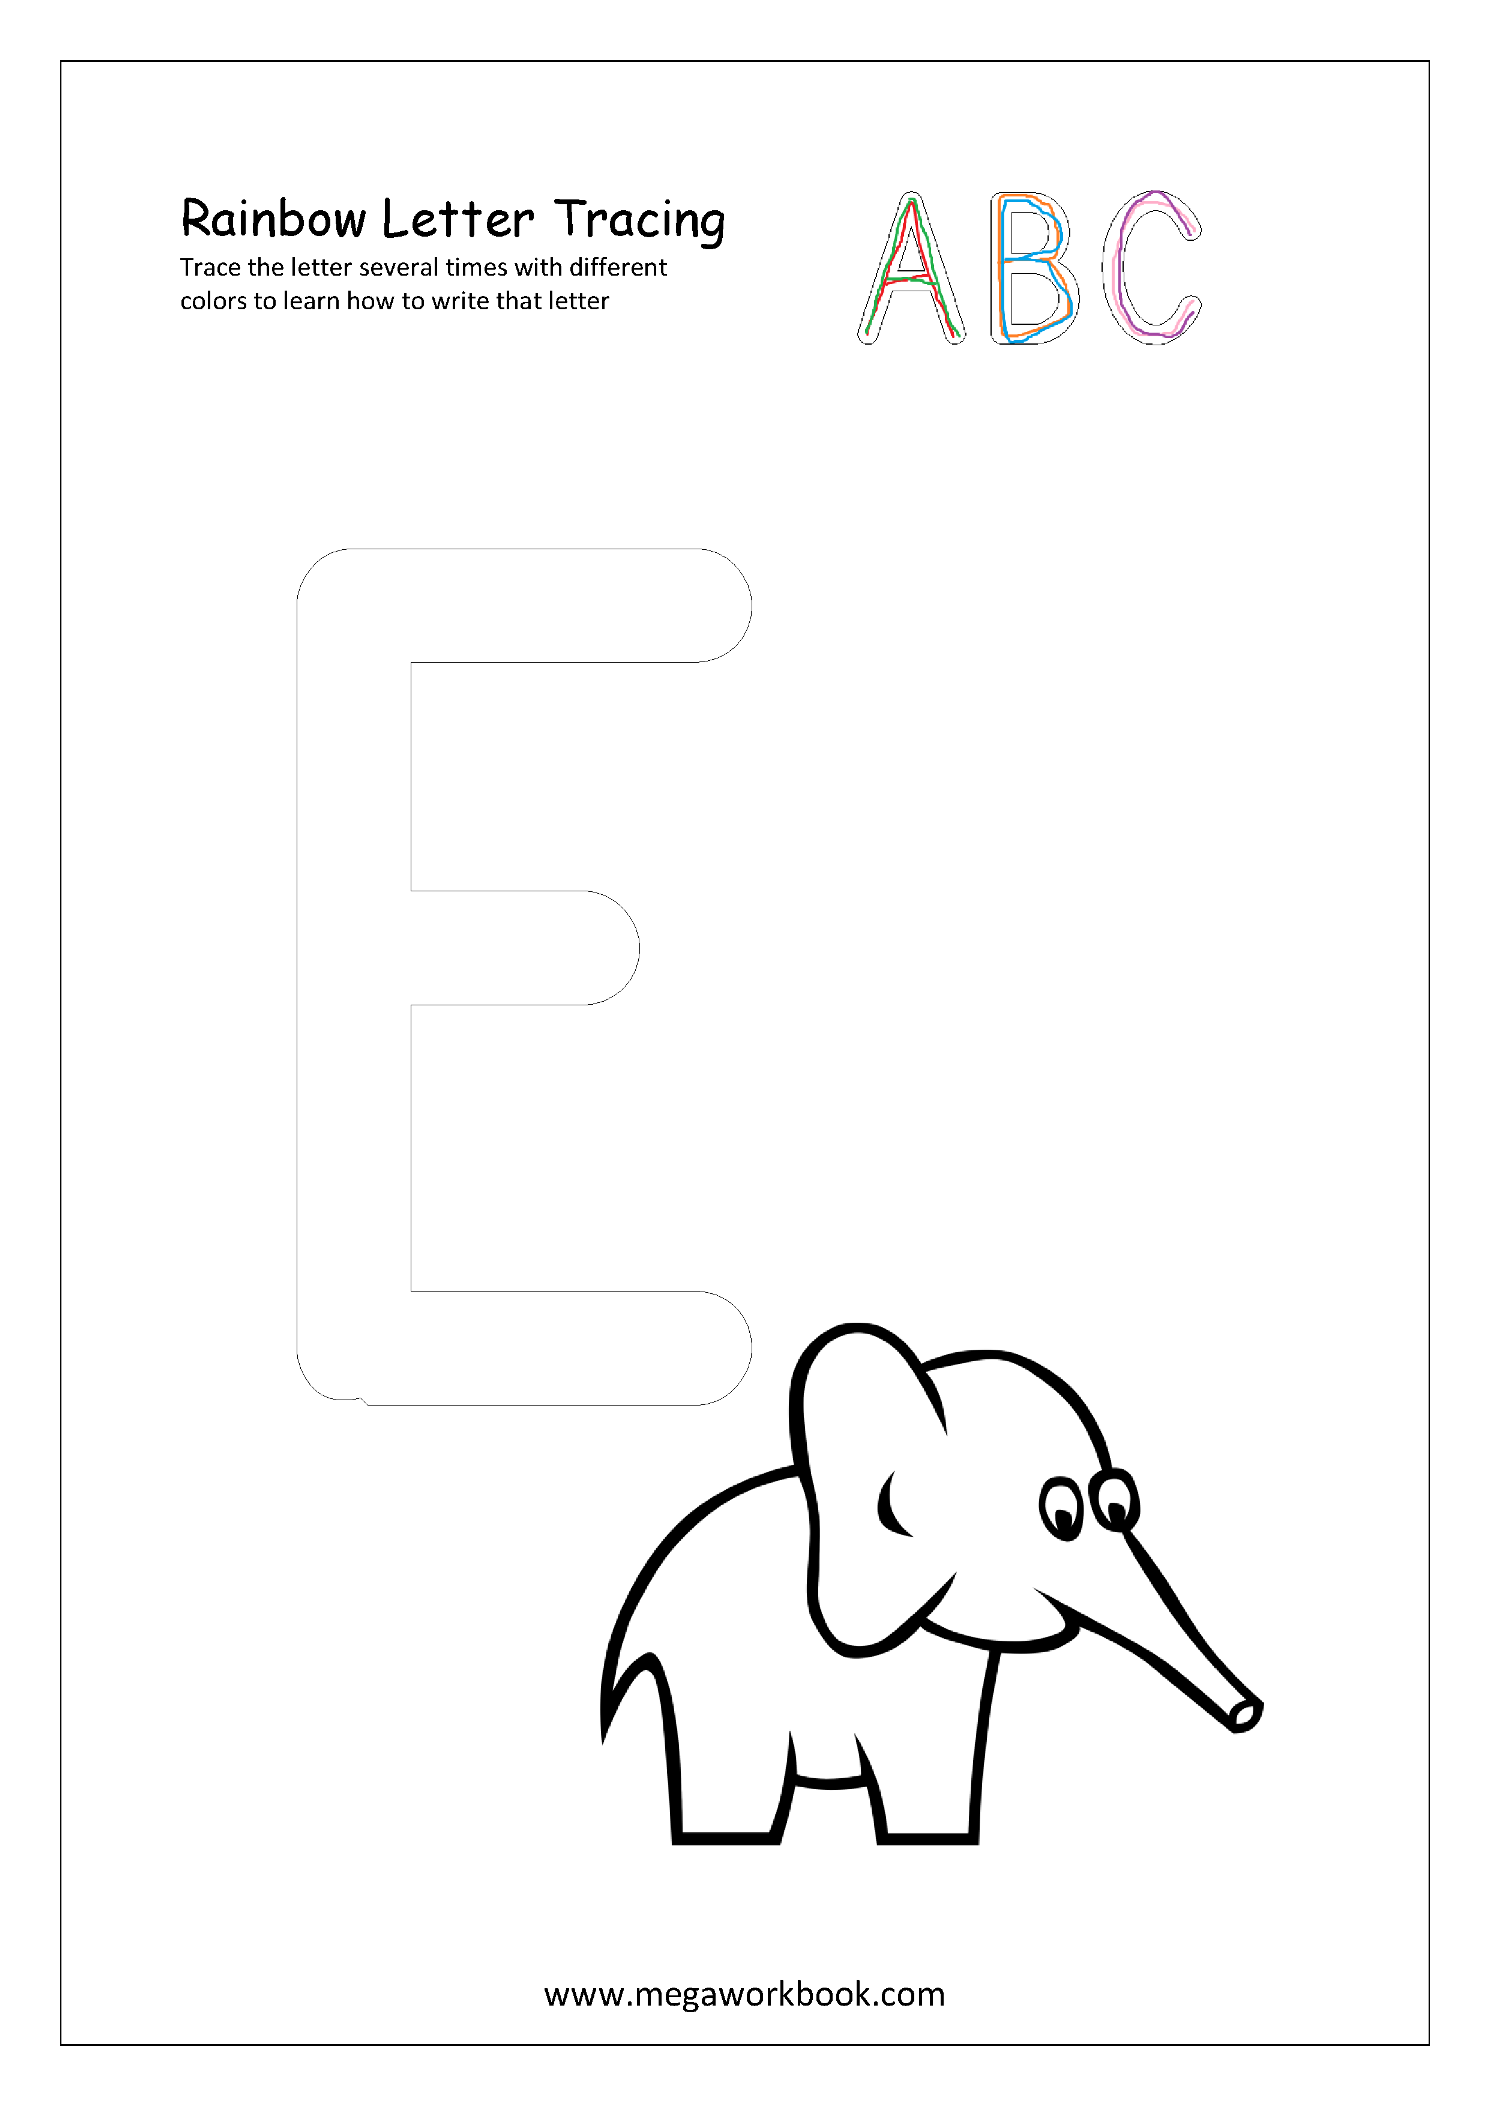 Free Printable Rainbow Writing Worksheets Rainbow Letter Tracing Objects Starting With Any Letter Megaworkbook